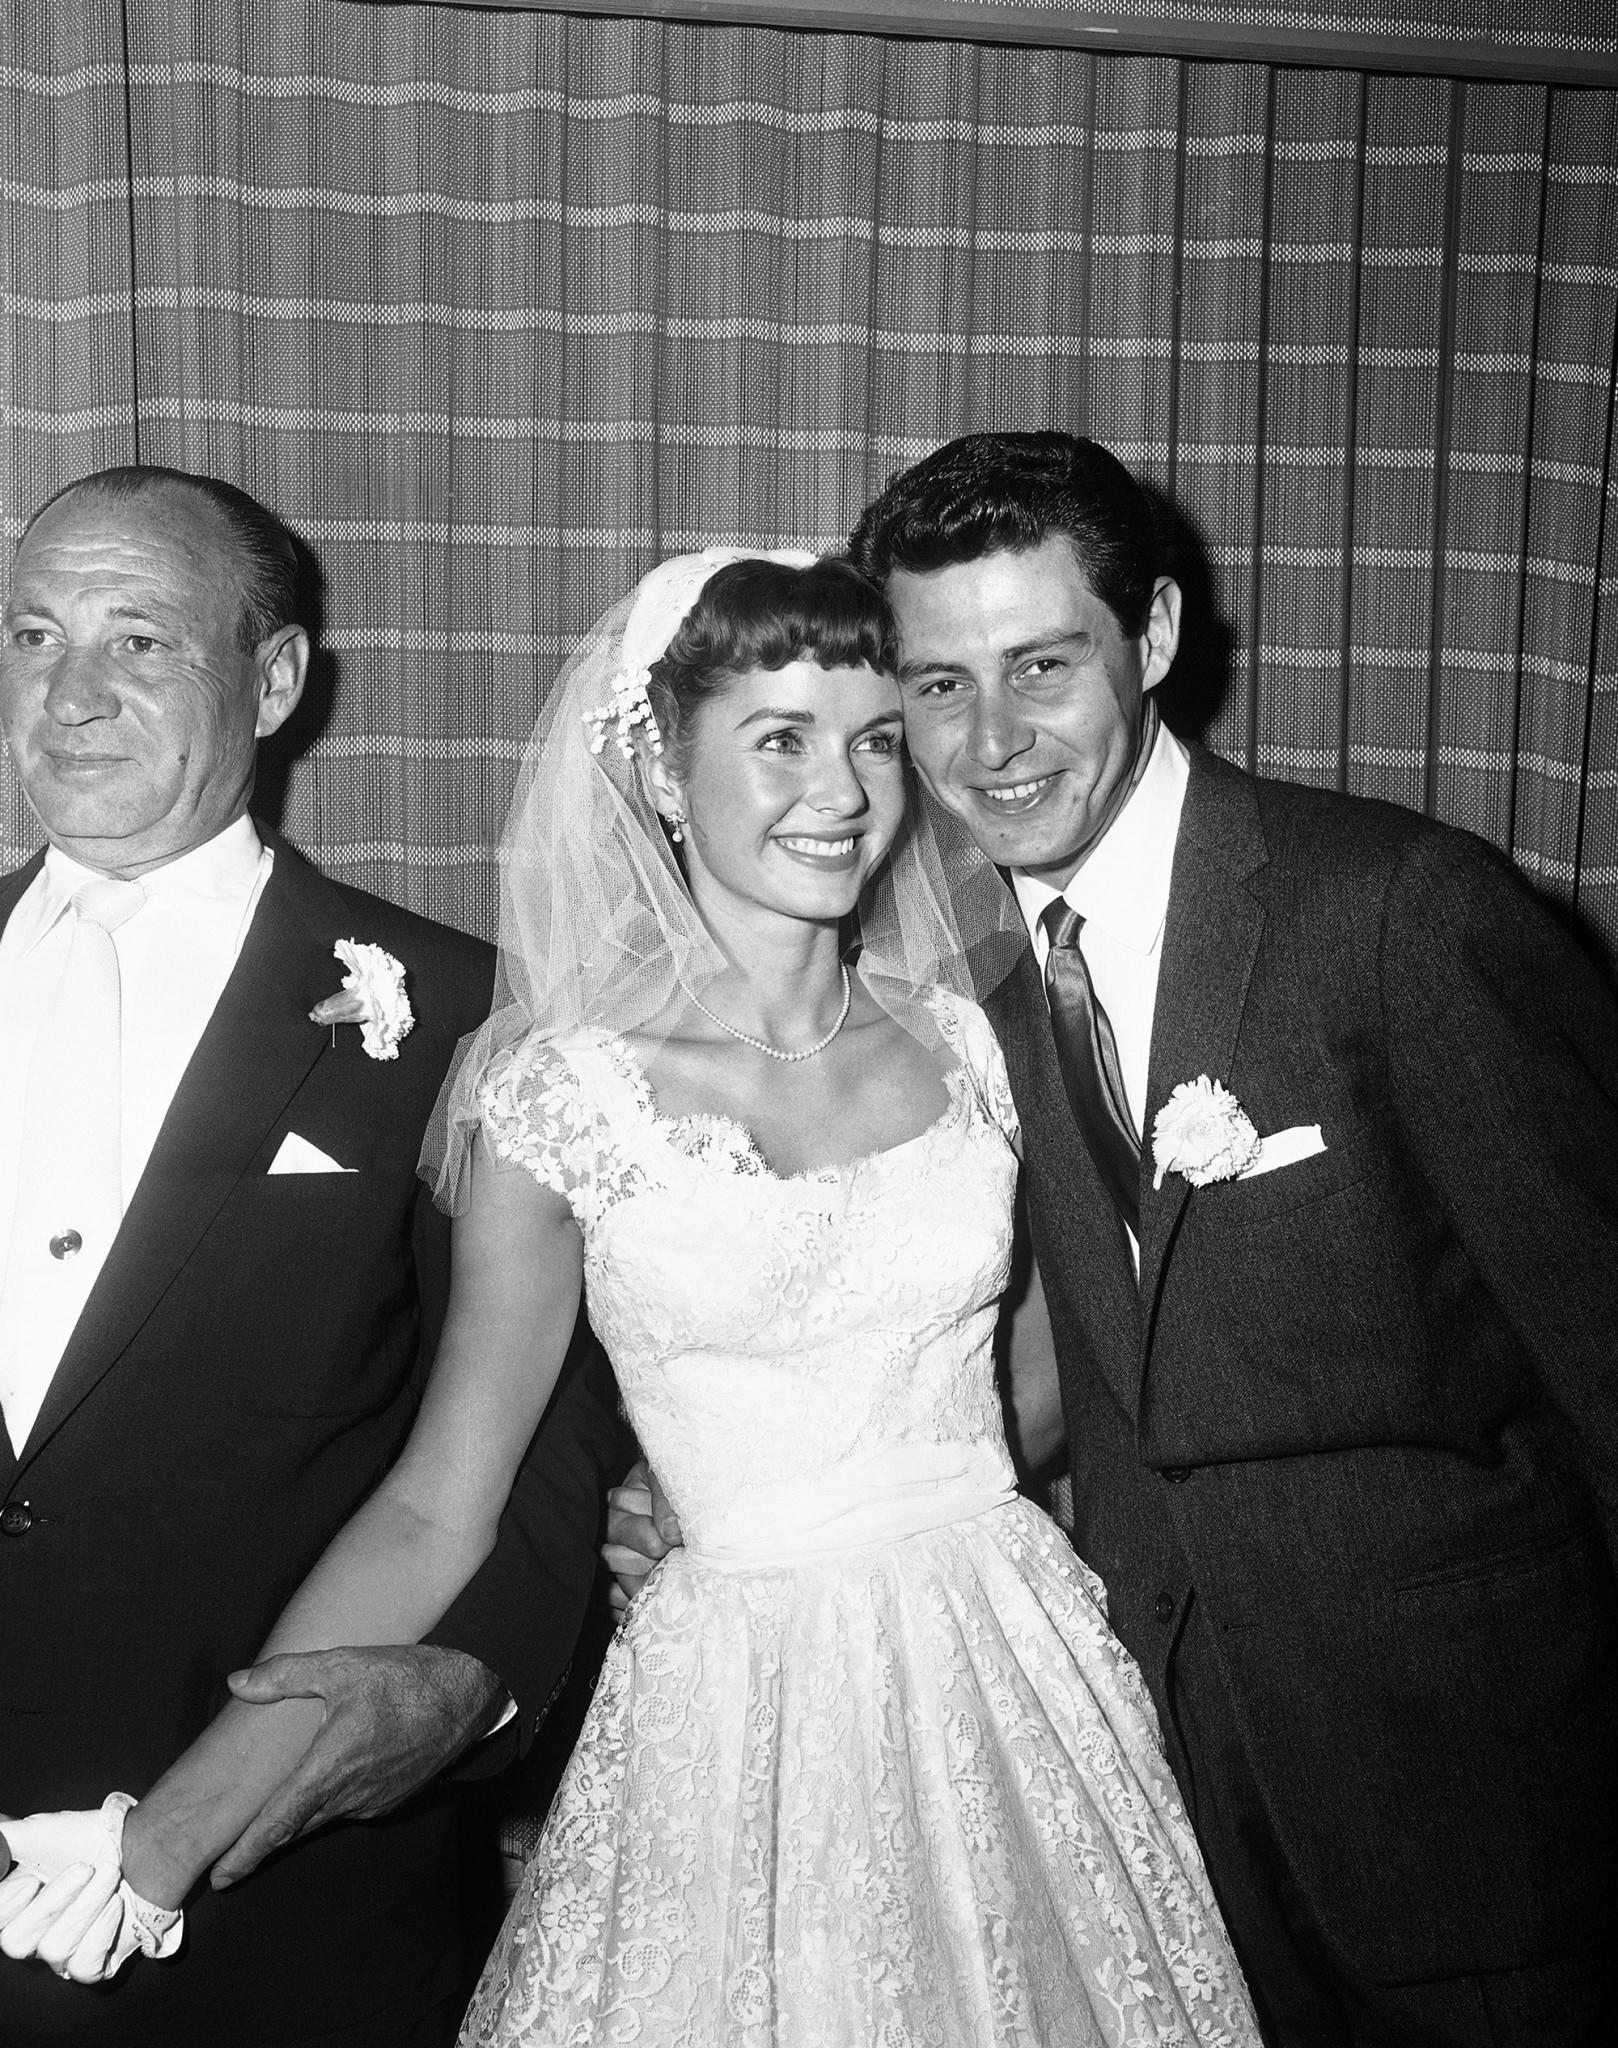 <p>Singer Eddie Fisher, 26, and his bride, actress Debbie Reynolds, 23, pose cheek to cheek following their marriage in a civil ceremony at Grossinger's Catskills Resort in Liberty, N.Y.,, Sept. 26, 1955. The man at left is unidentified. (AP Photo/Marty Lederhandler) </p>